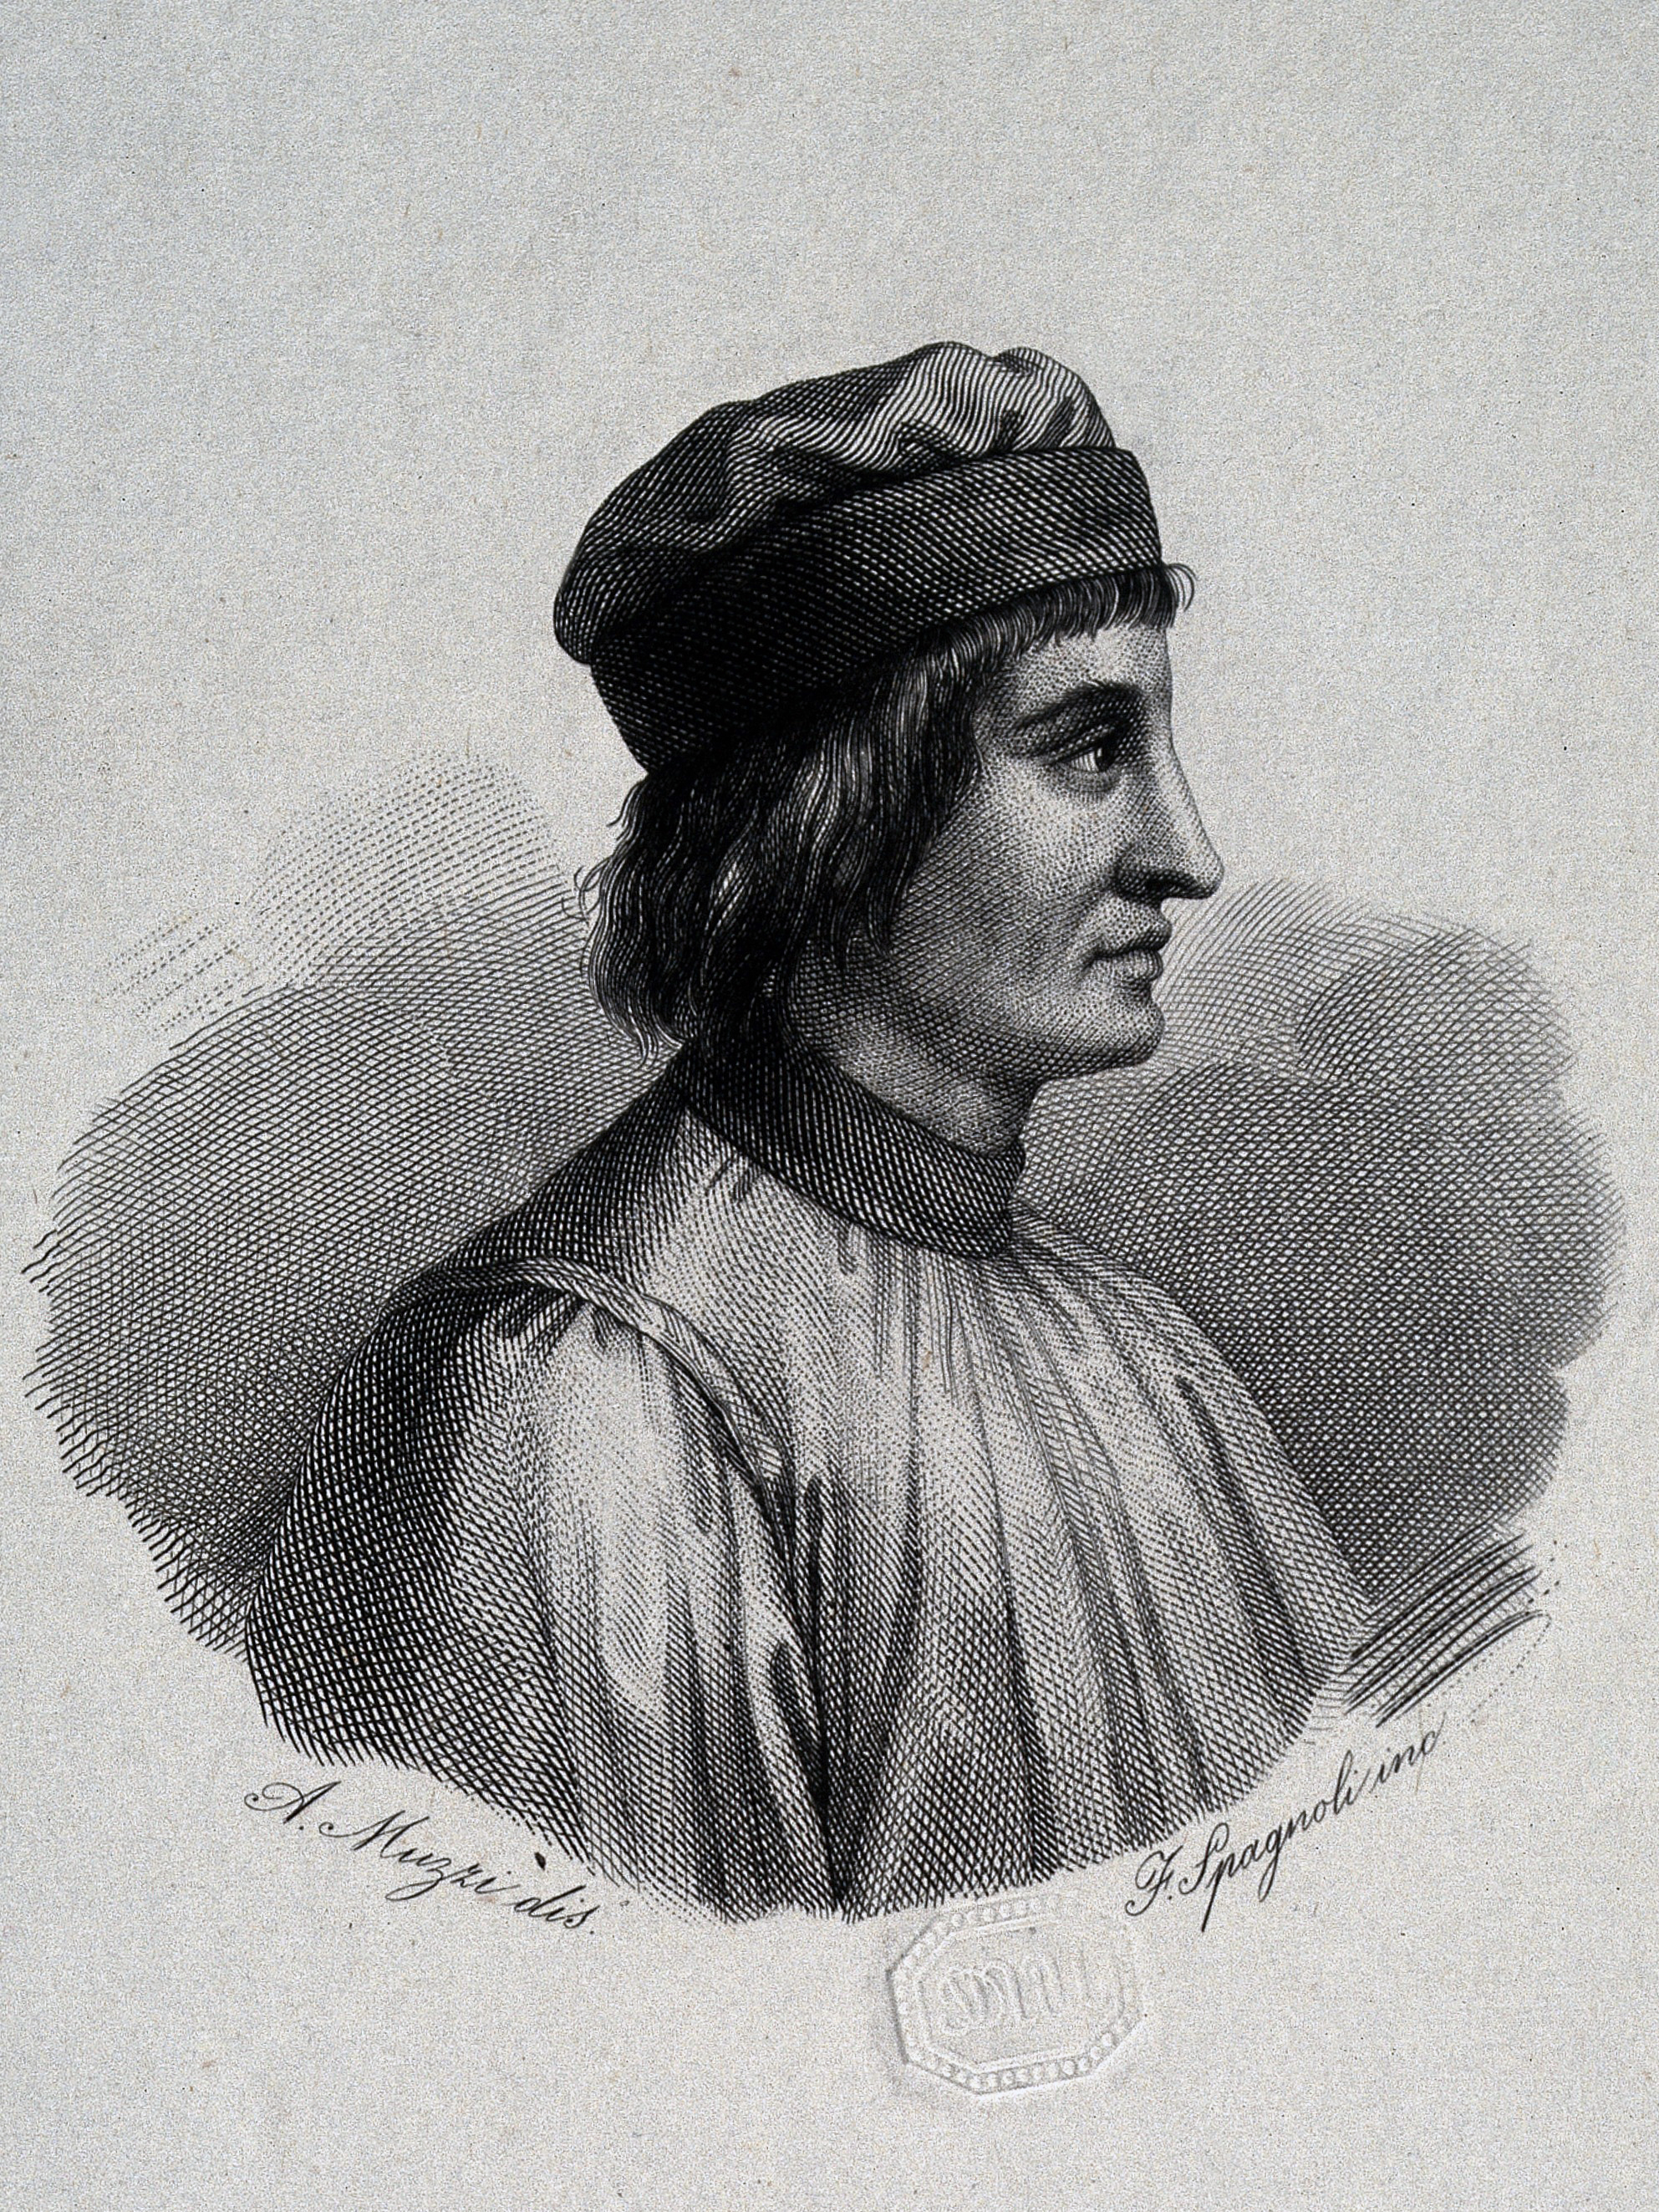 Nineteenth-century engraved portrait of de' Crescenzi after [[Antonio Muzzi]]